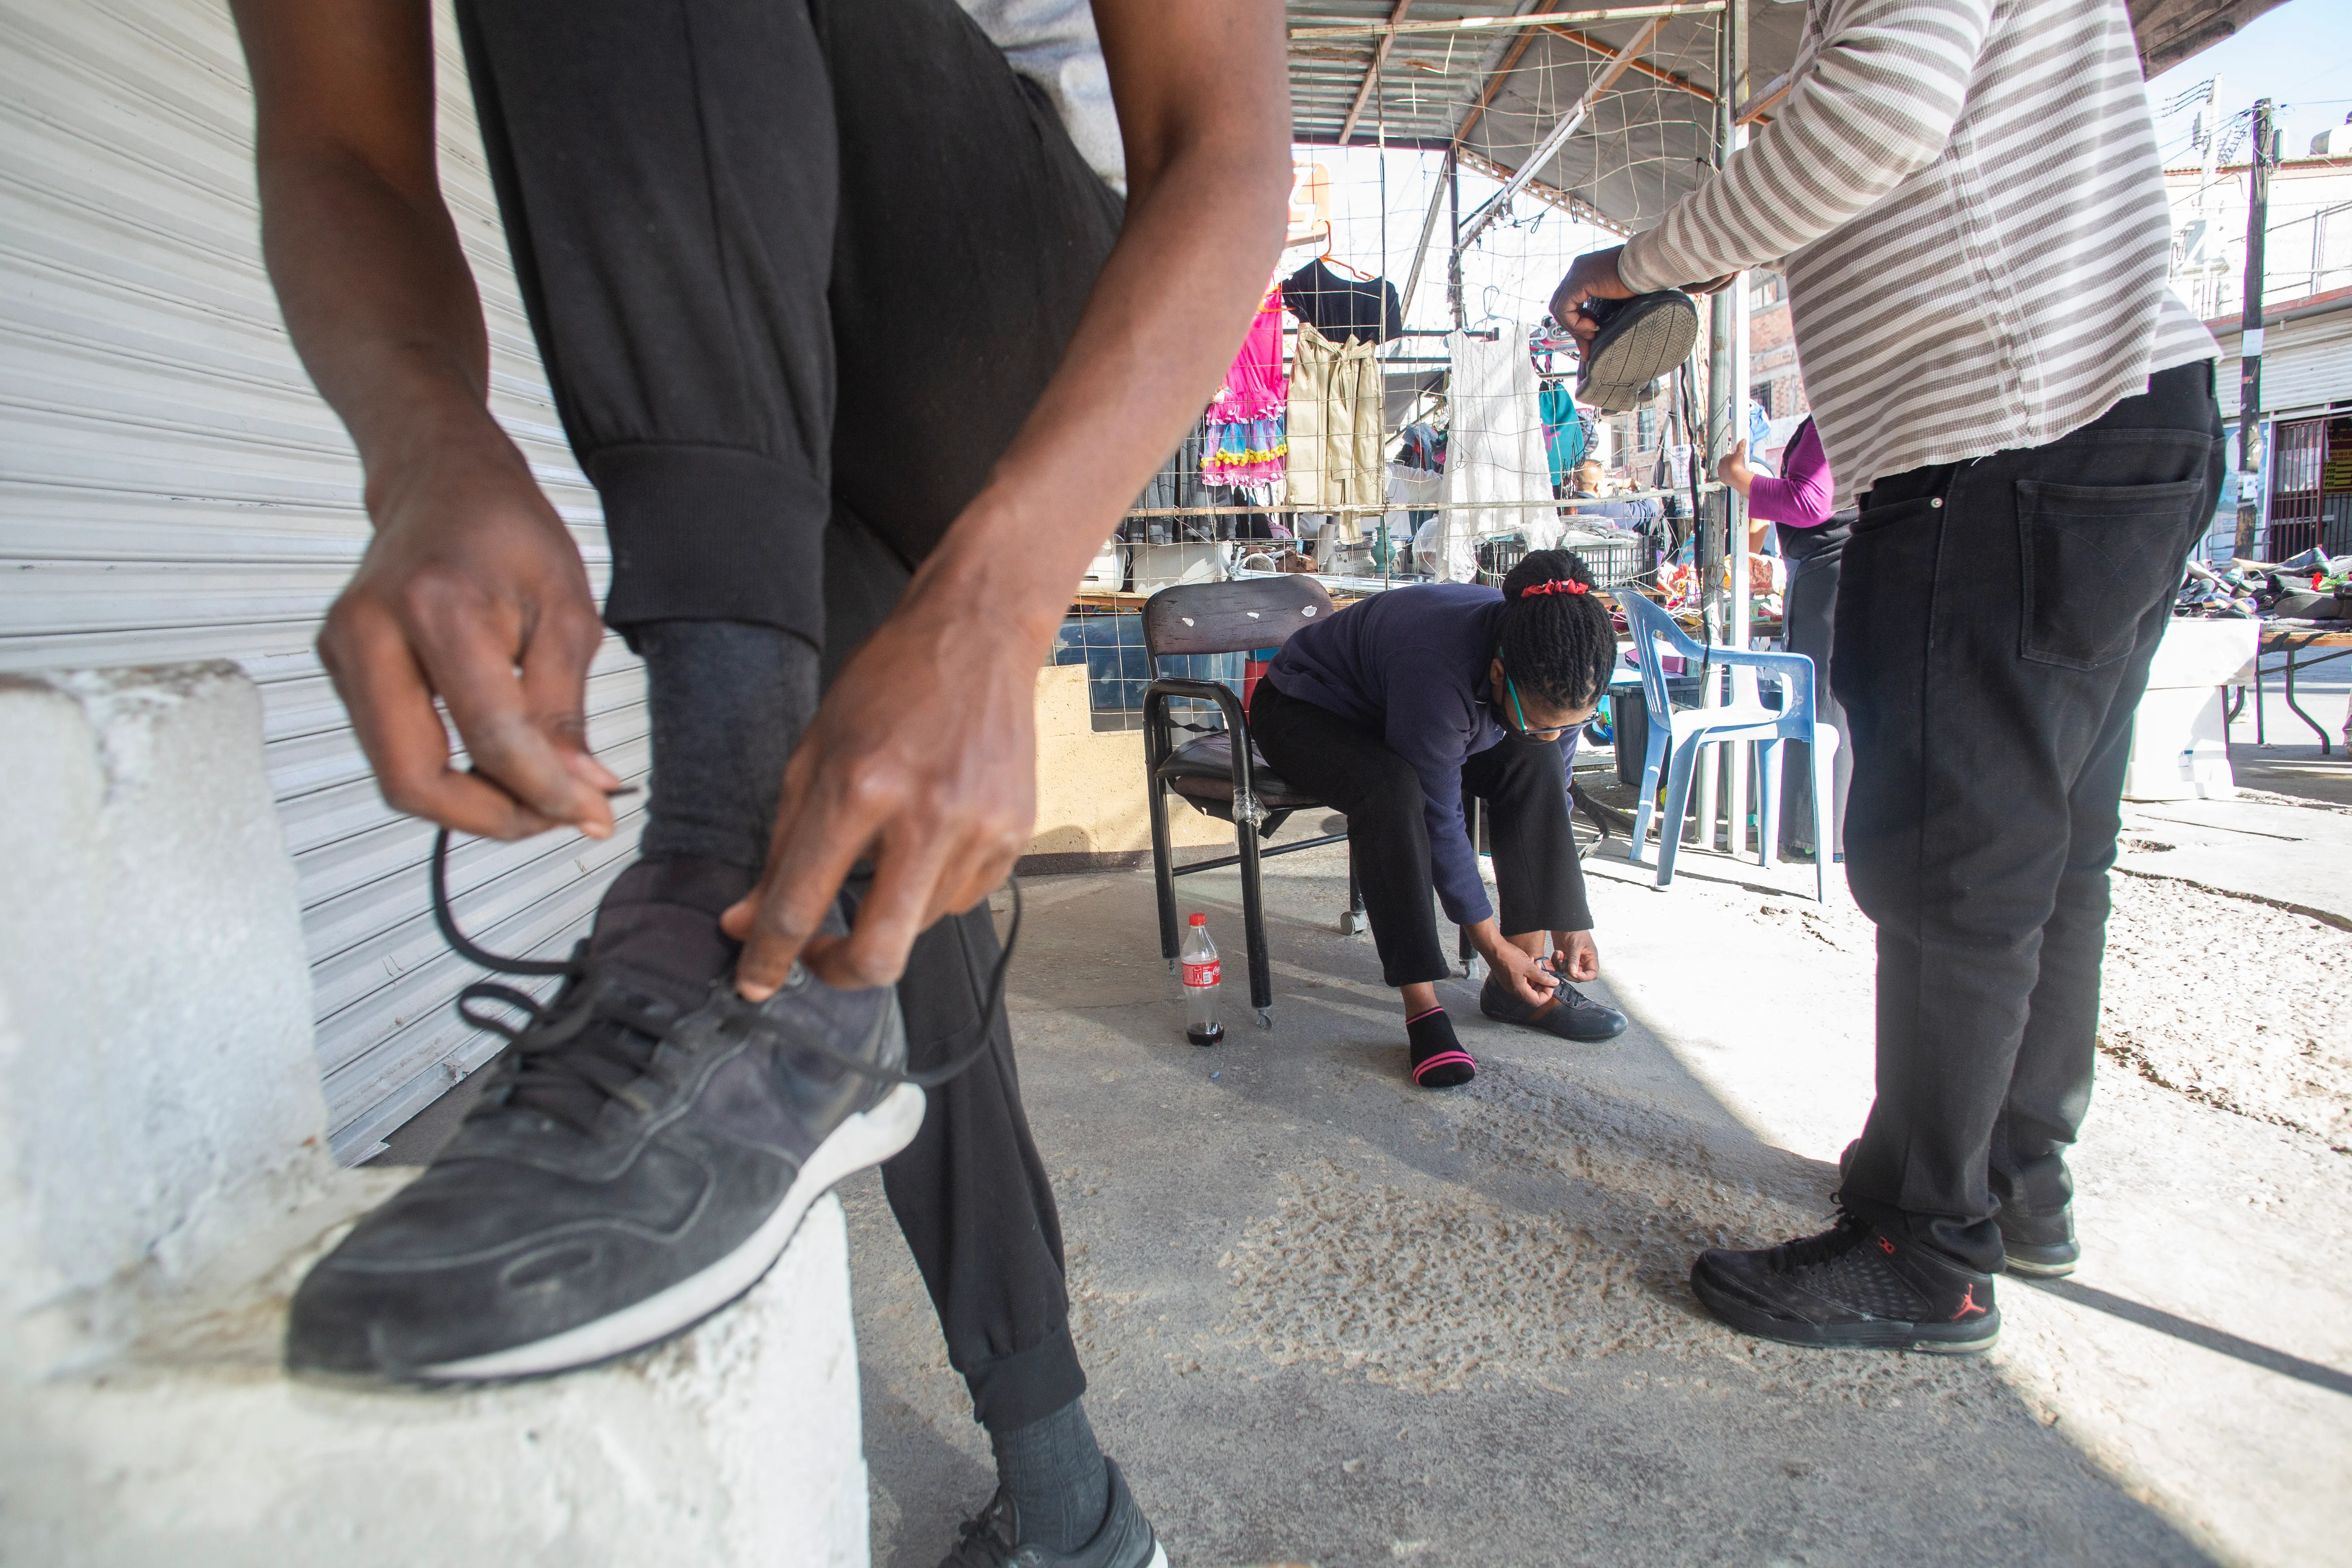 From left, Herve Alverna, Marie Martine and Fanfan Jean lace up their shoes after a street vendor in downtown Cuidad Juarez gives them free shoelaces. The migrants' shoelaces and belts were taken from them by U.S. Border Patrol, a typical security measure, when they entered the U.S. without proper documentation.